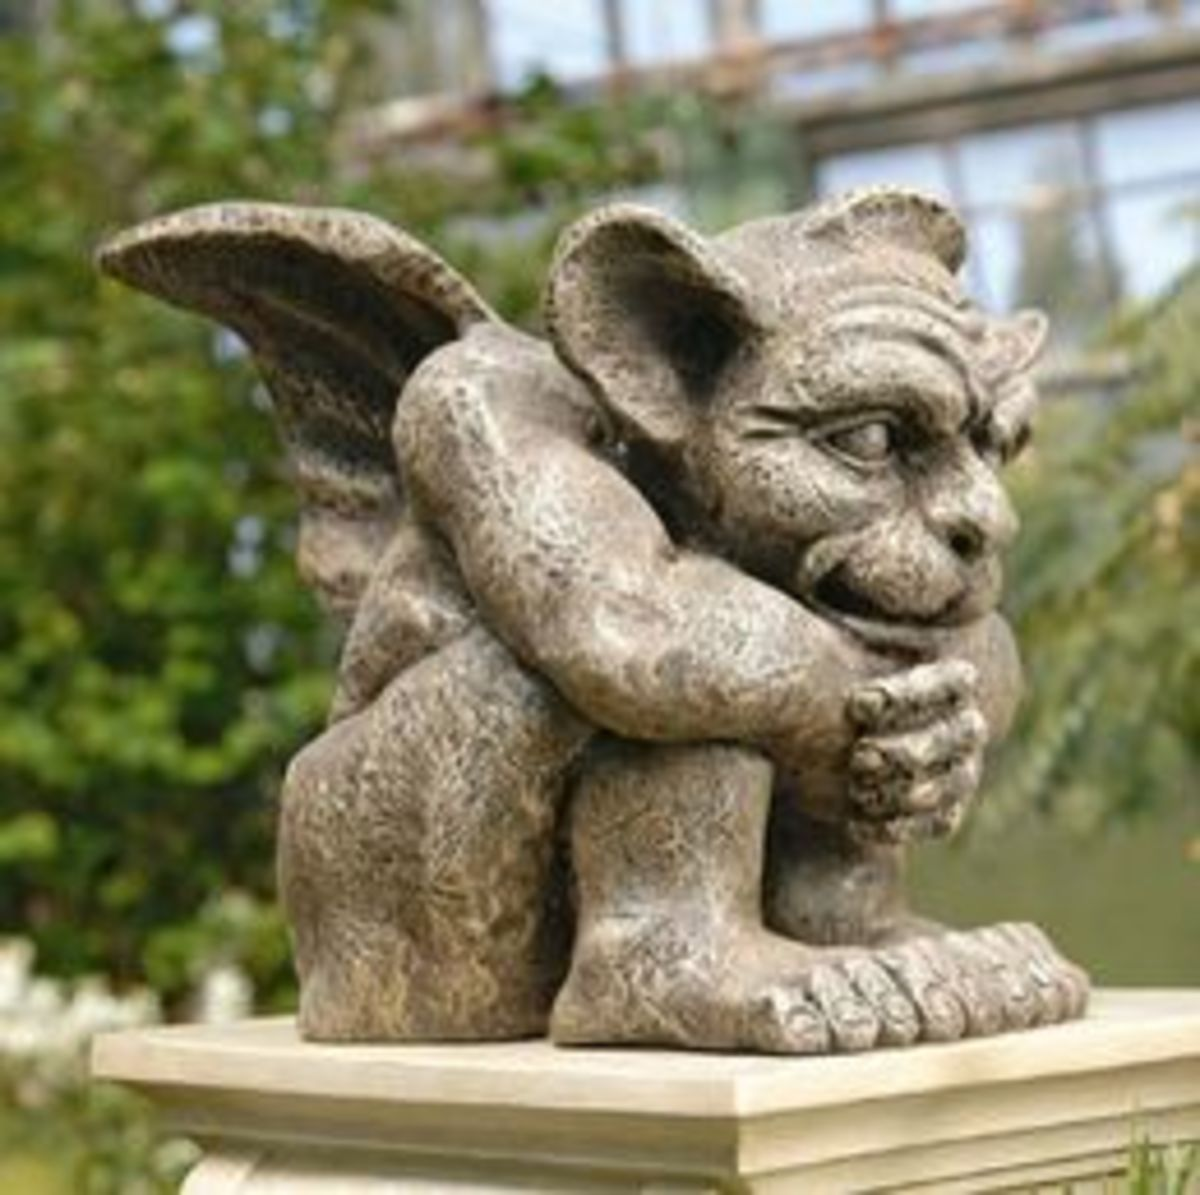 Emmett the Gargoyle